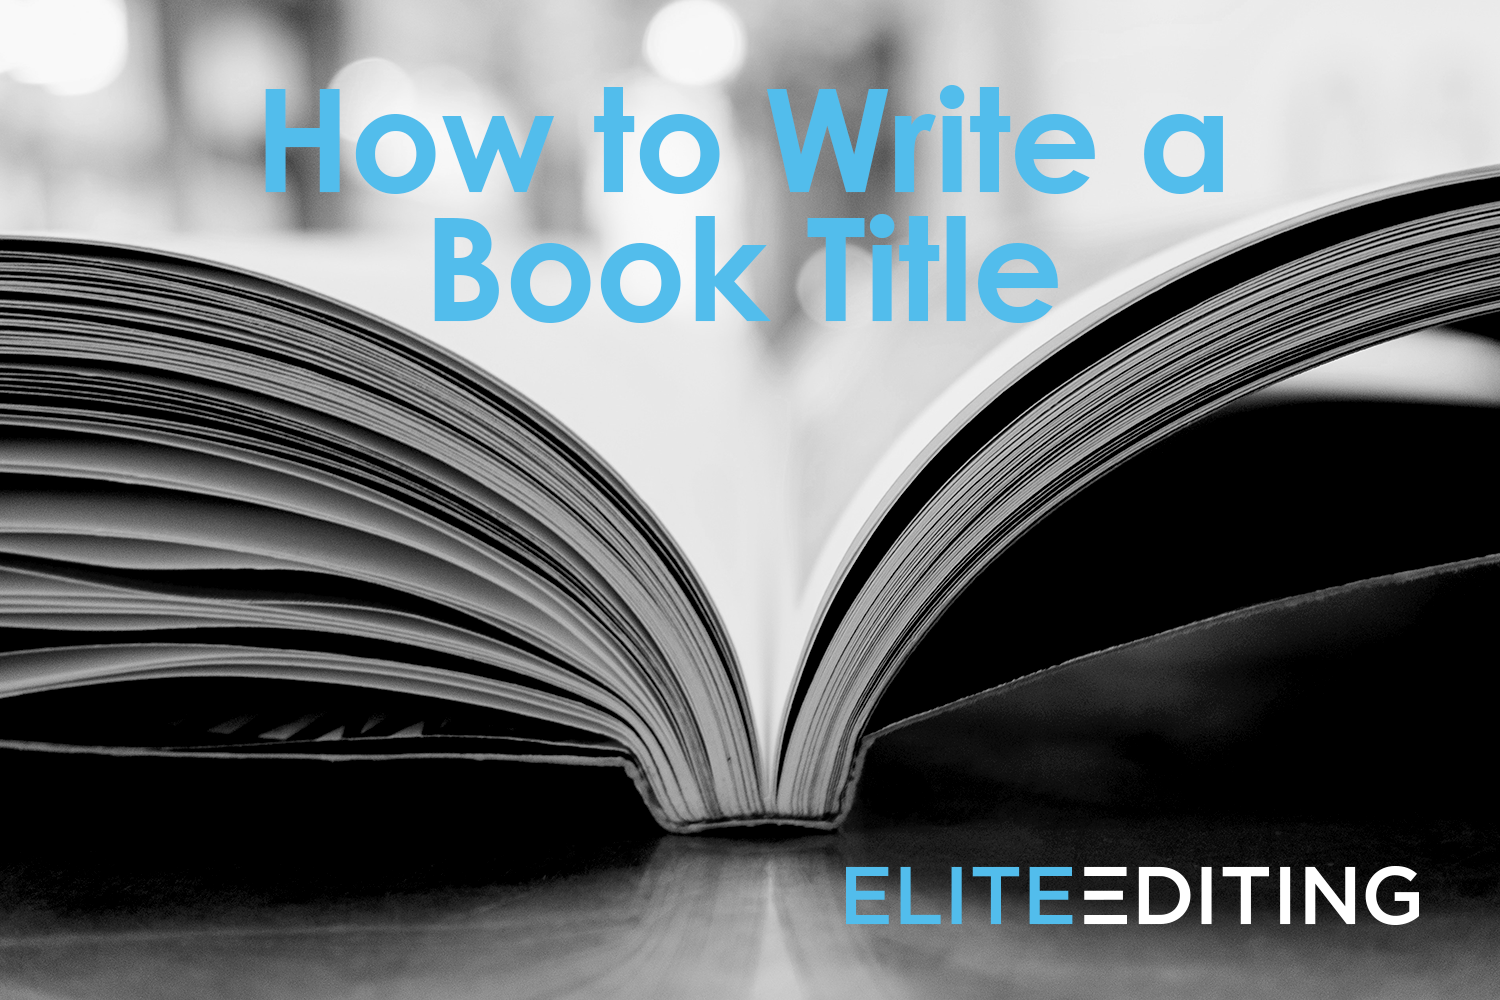 how to write a book title